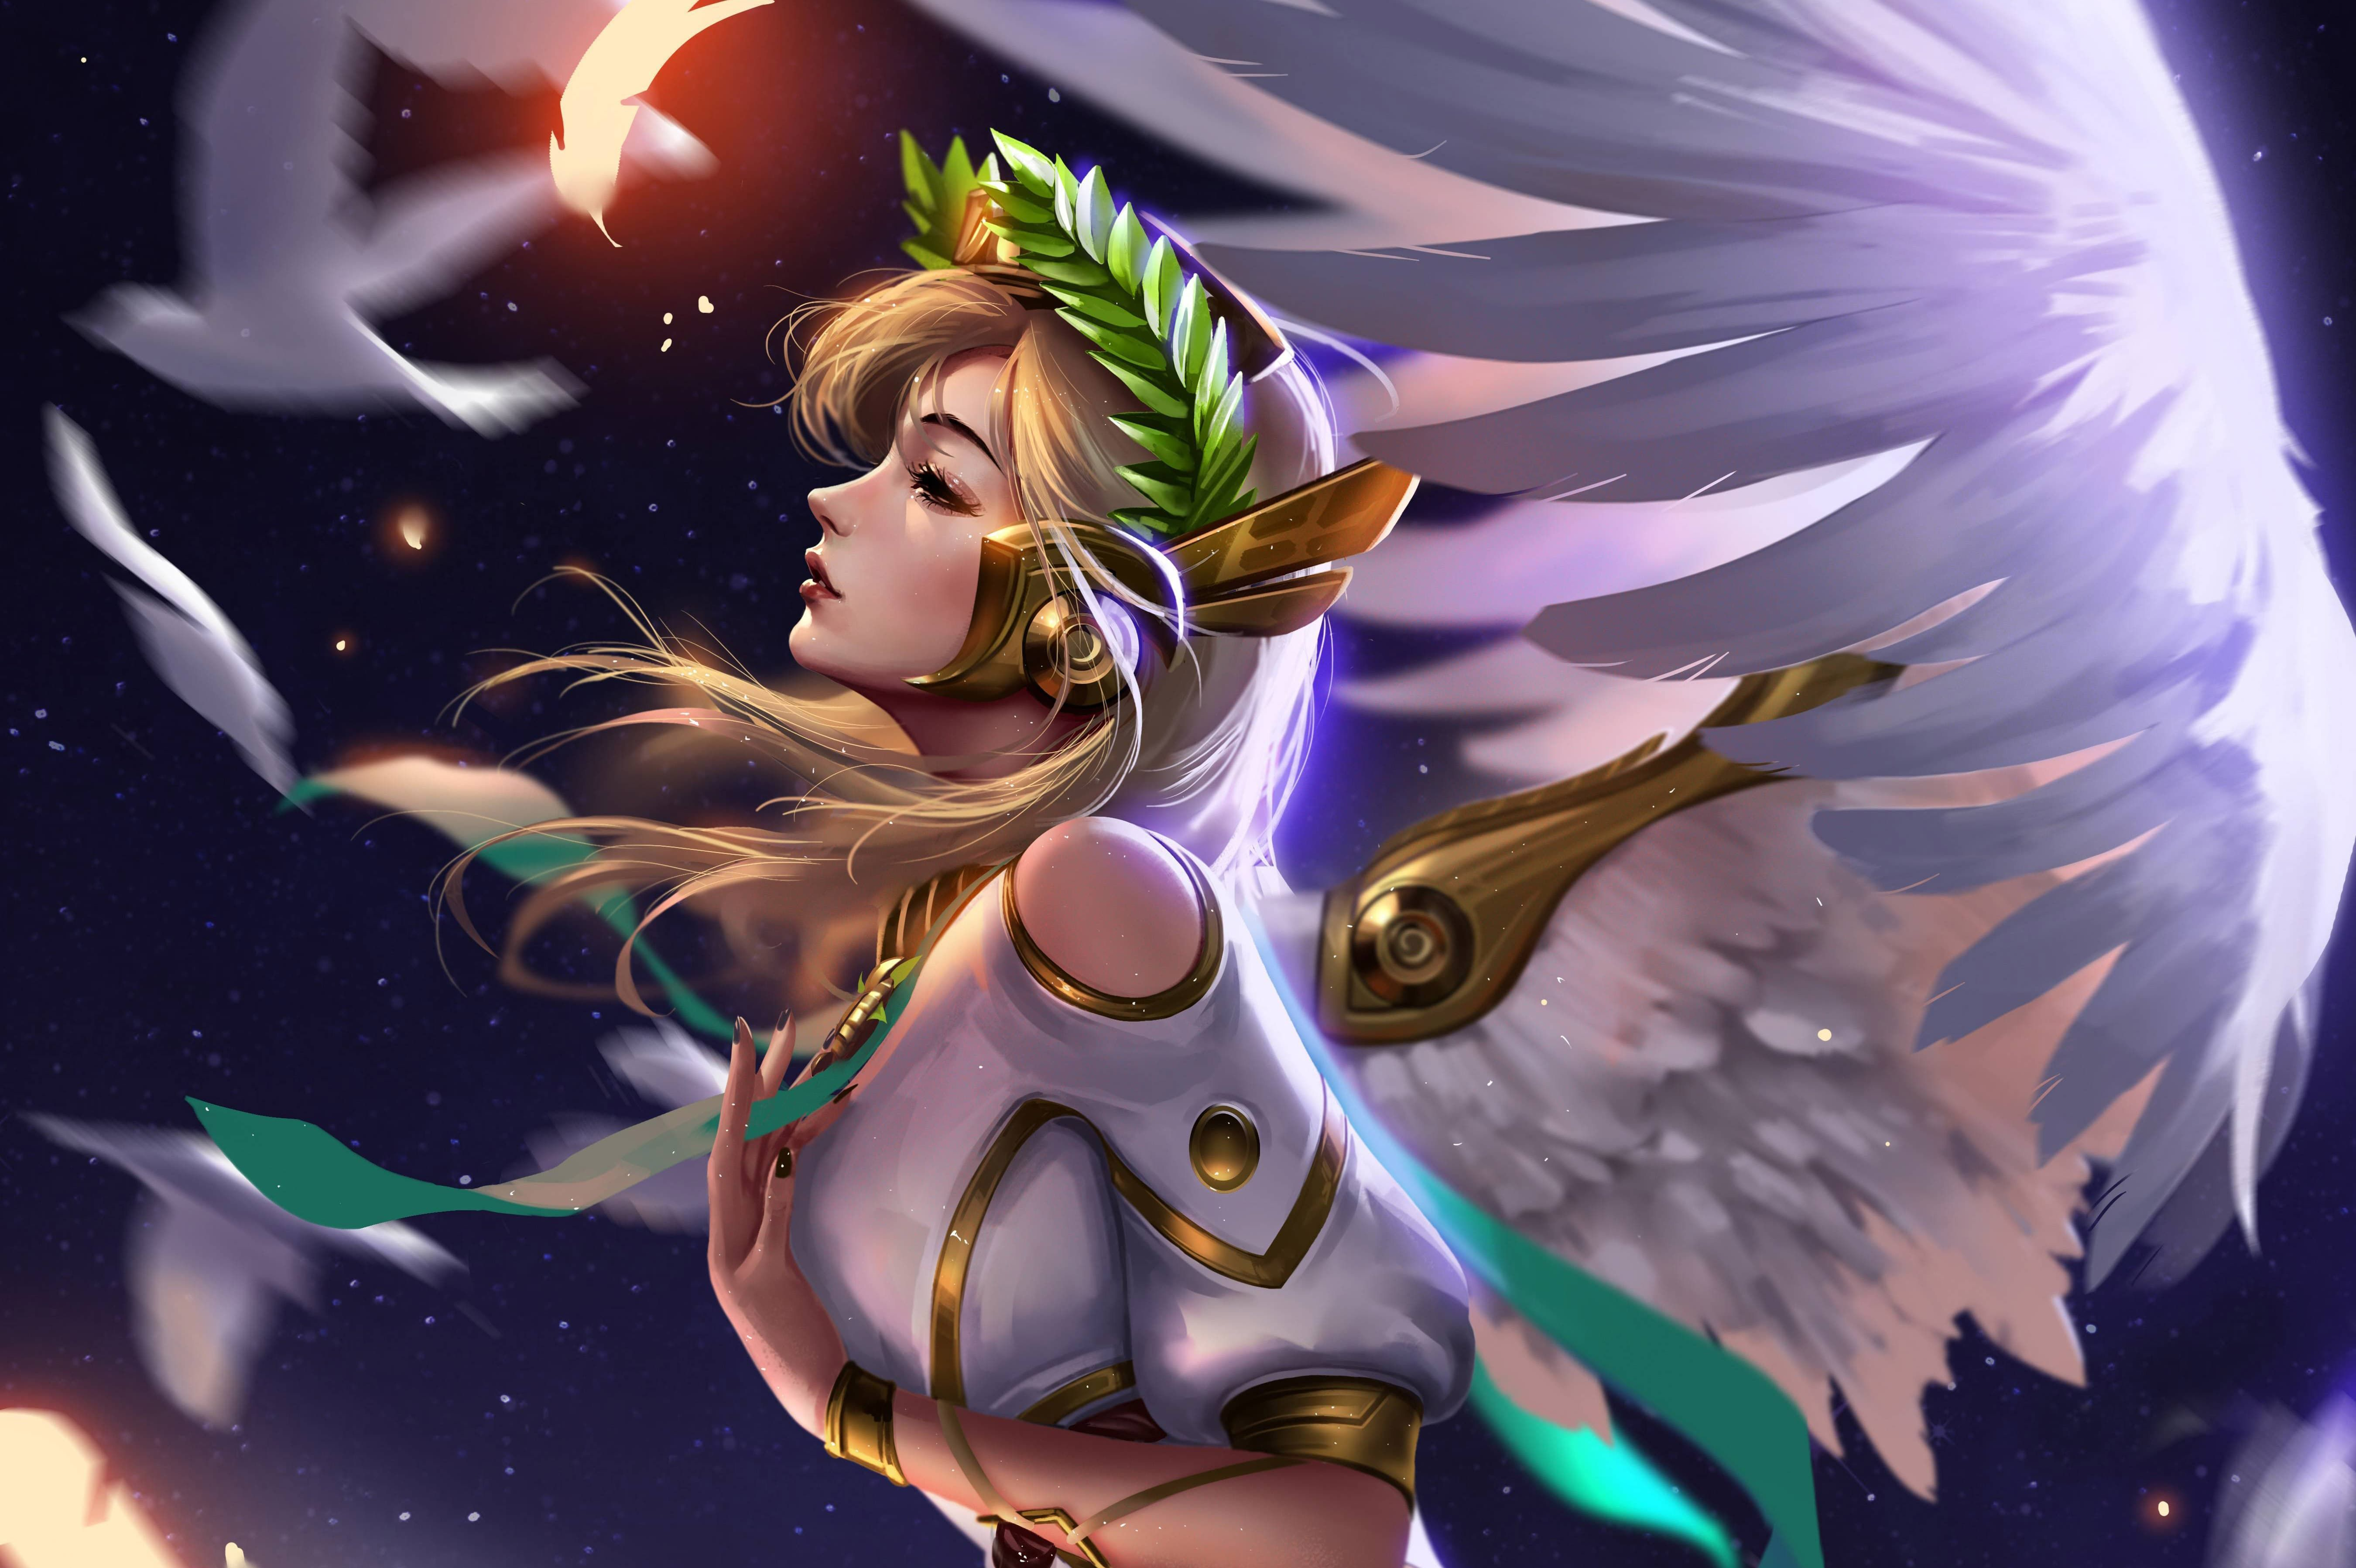 Mercy Overwatch 5k Best Artwork Mercy Overwatch 5k Best Artwork Is An Hd Desktop Wallpaper Posted In Our Free Image Collect Personnage Manga Personnages Jeux